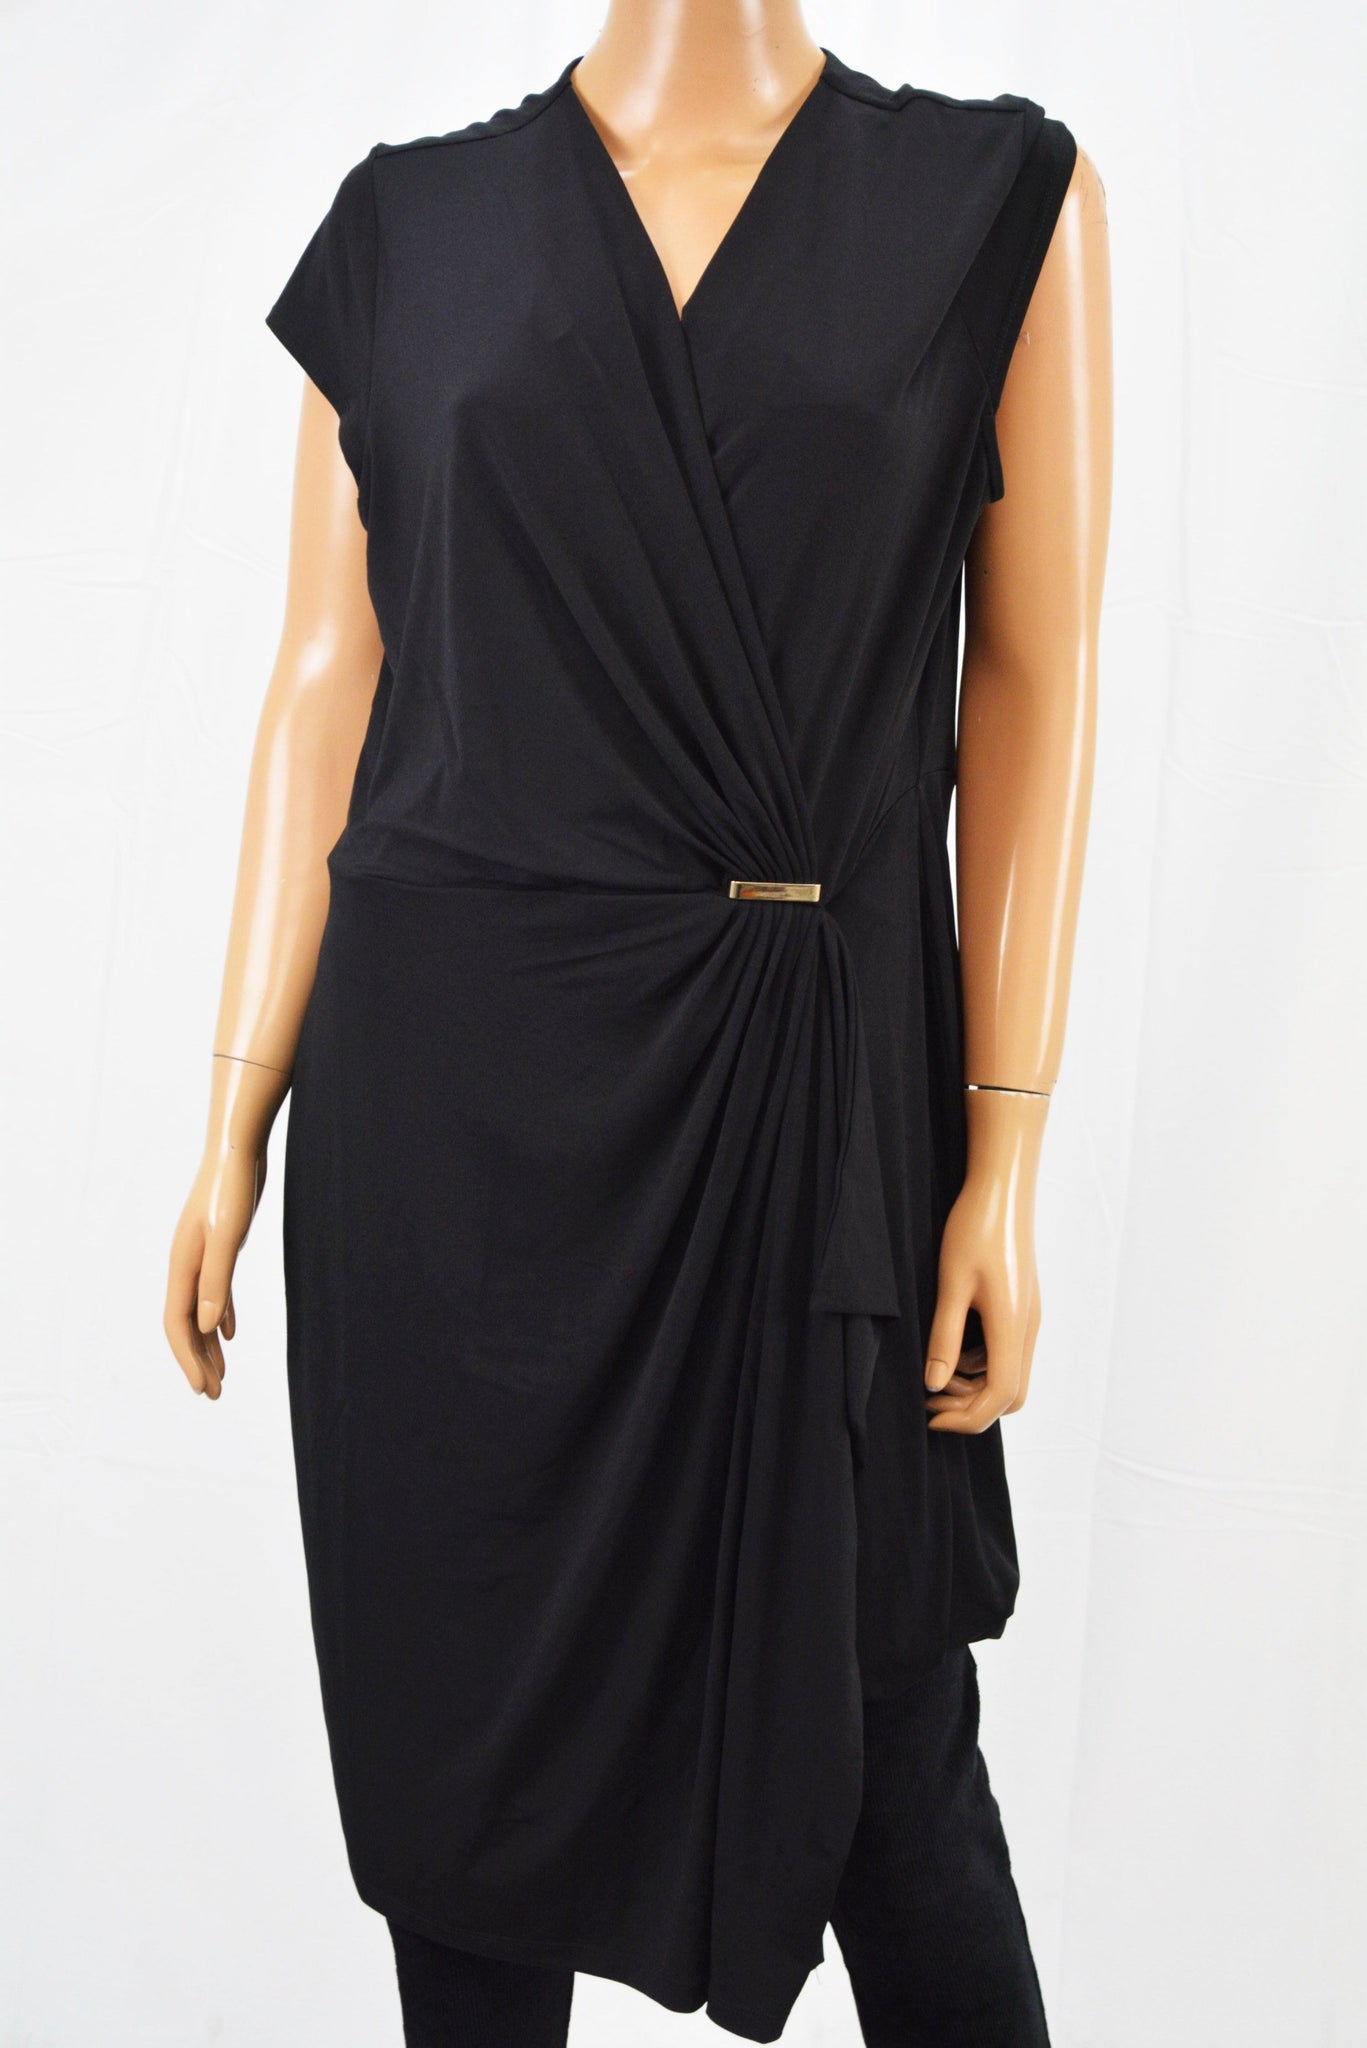 Charter Club Women's Cap Sleeve Black Ruched Faux-Wrap Sheath Dress XL